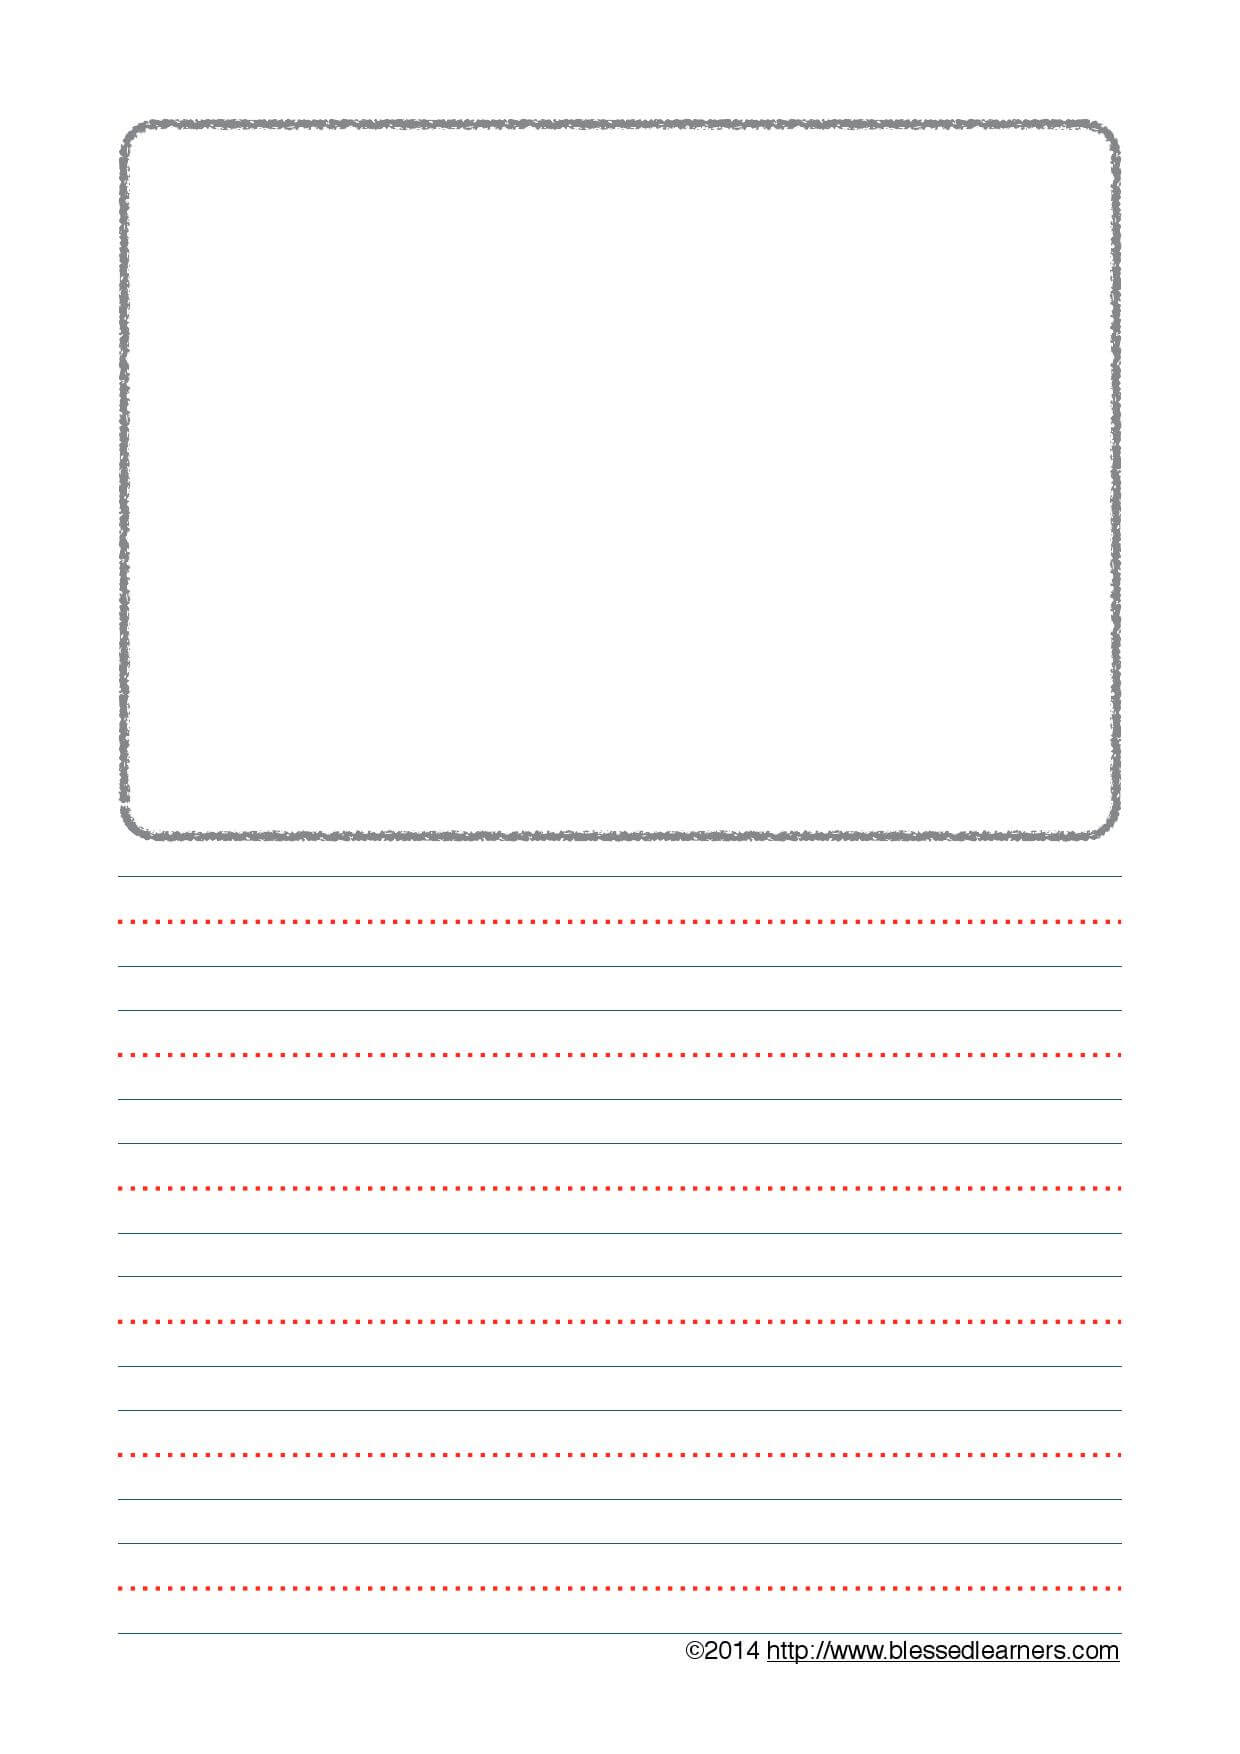 100+ Notebooking Page Templates - Blessed Learners Shop